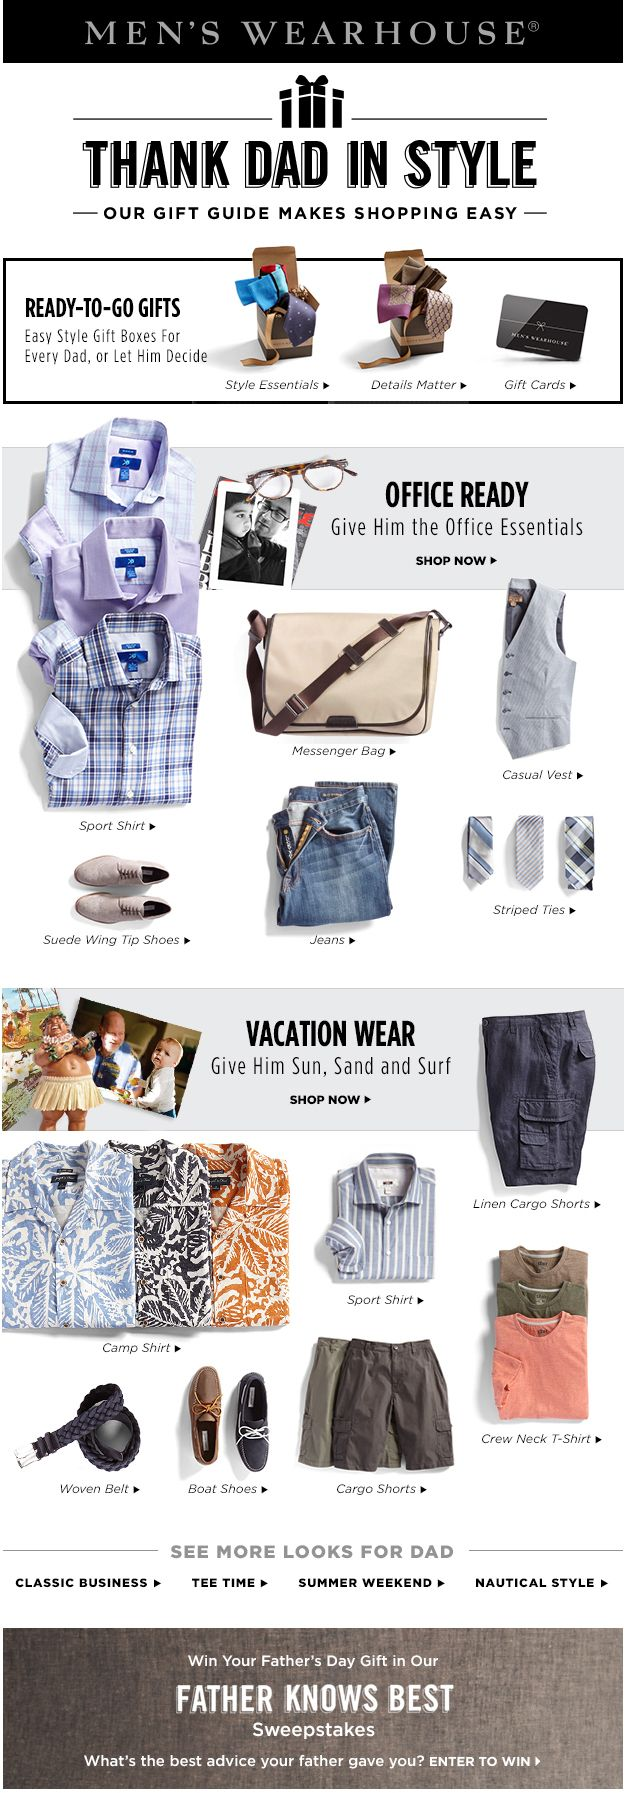 Men's Wearhouse father's day email promotion; Art Direction and Design: Allison Milmoe